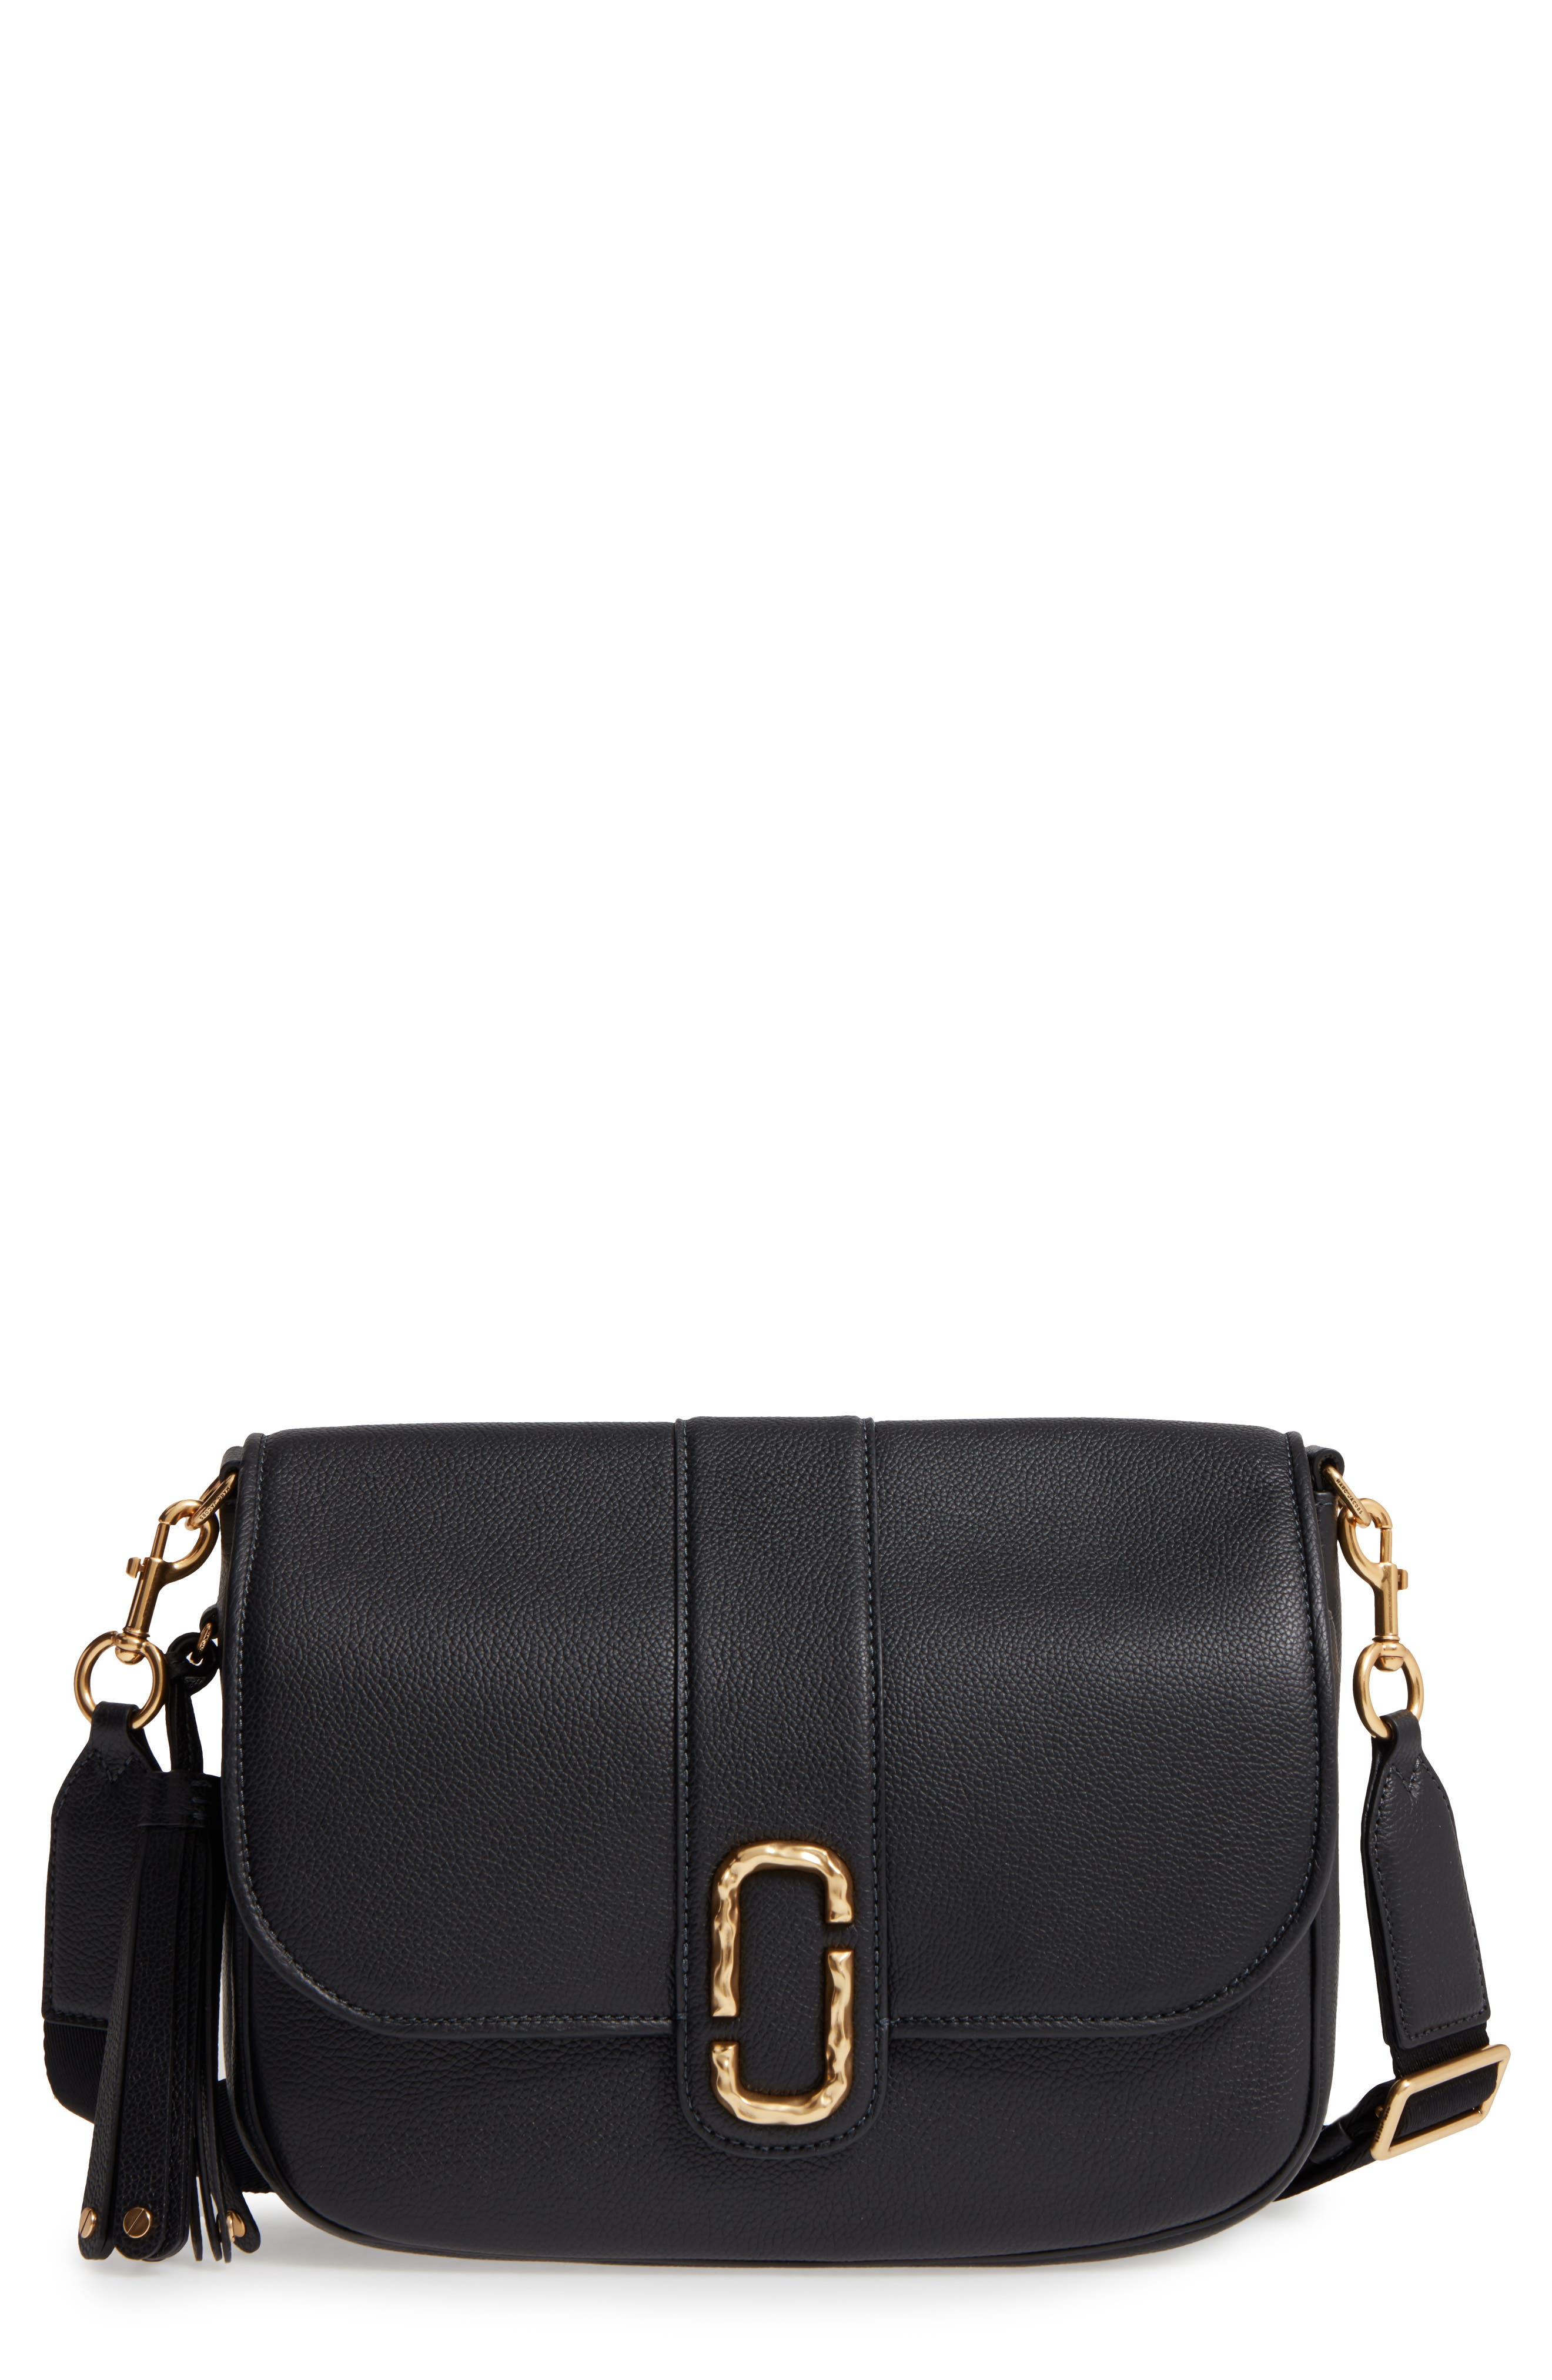 Main Image - MARC JACOBS Interlock Leather Crossbody Bag